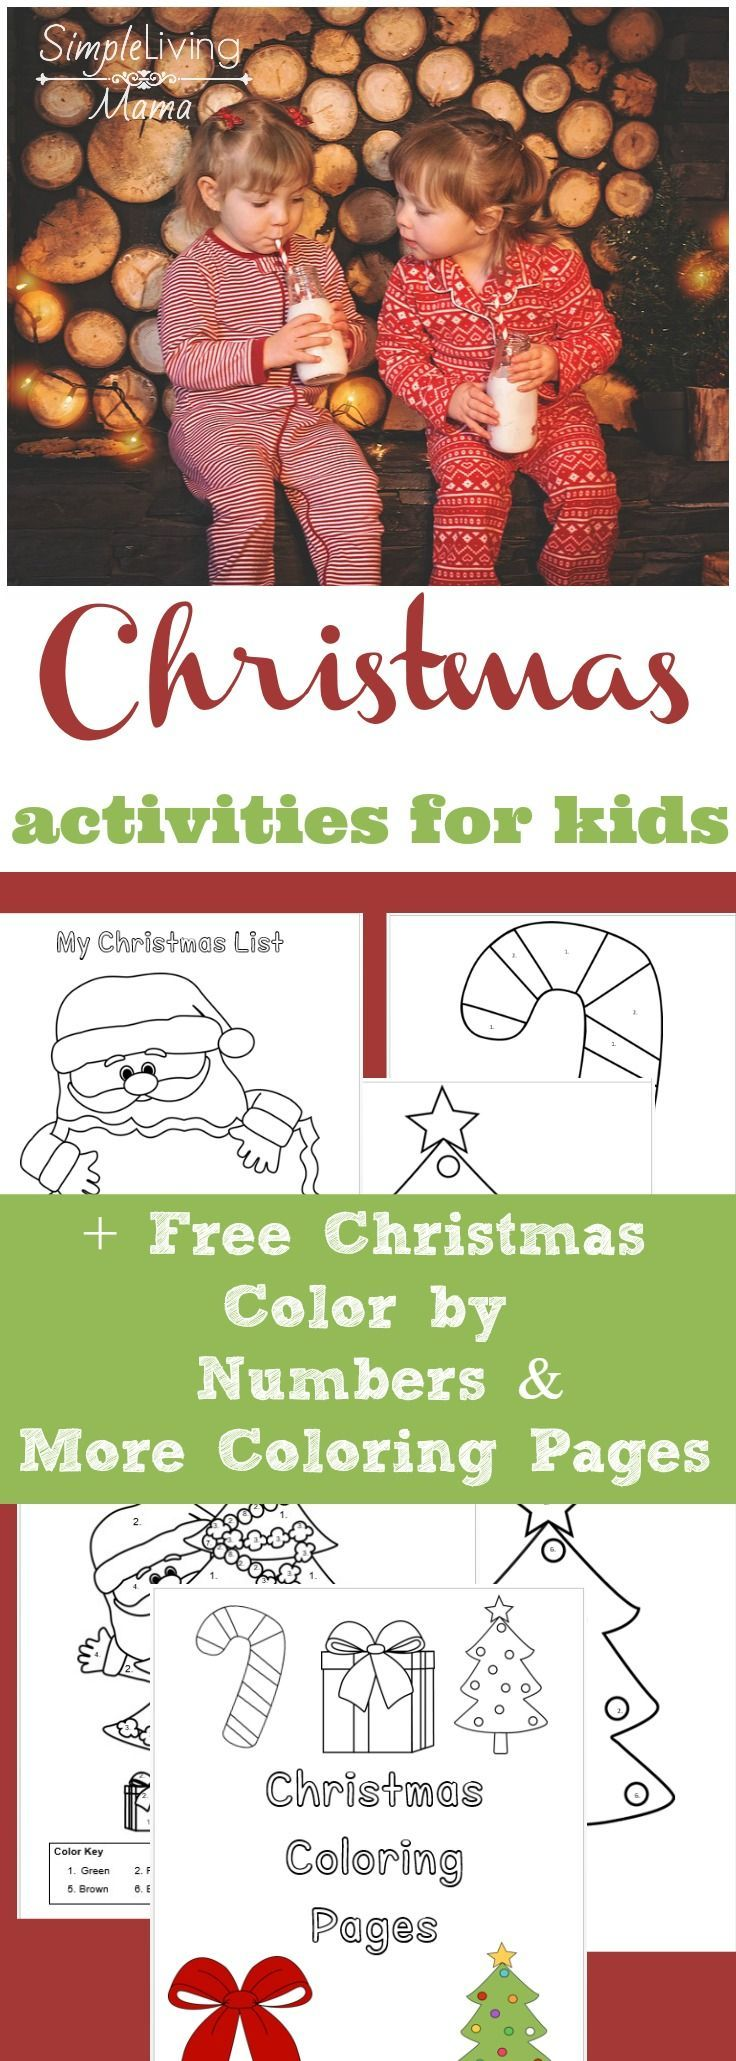 104 best Free Christmas Printables images on Pinterest | Christmas ...